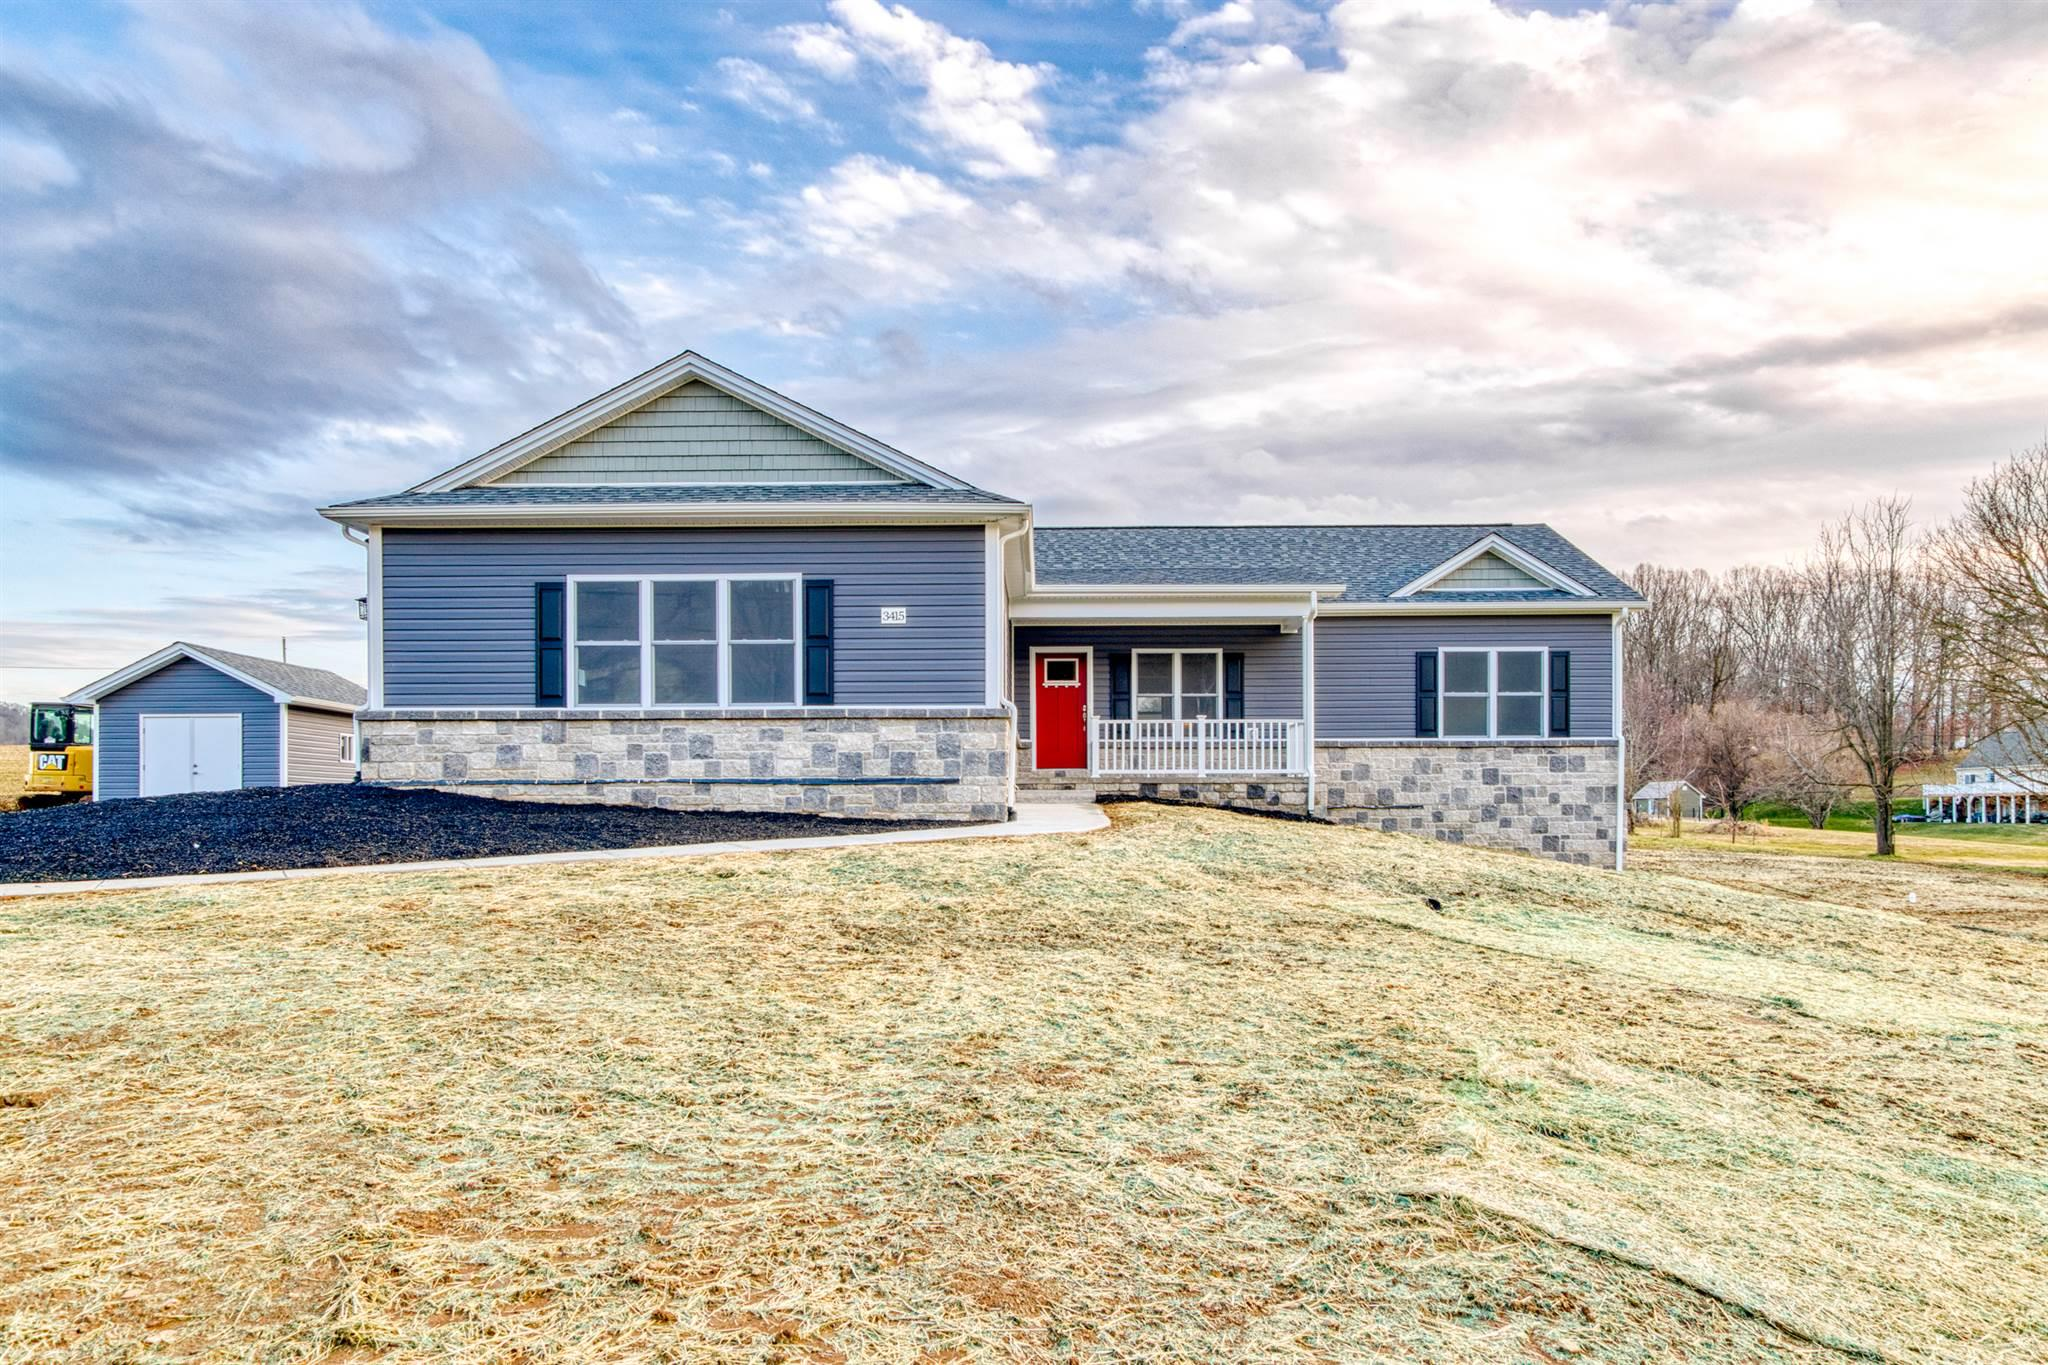 New Construction by Absolute Construction LLC. This home has a very nice open floor plan. Large kitchen with stainless steel appliances an island and granite counter tops. Beautiful sun room and full walkout basement. Also included is a 12' X 16' storage building.